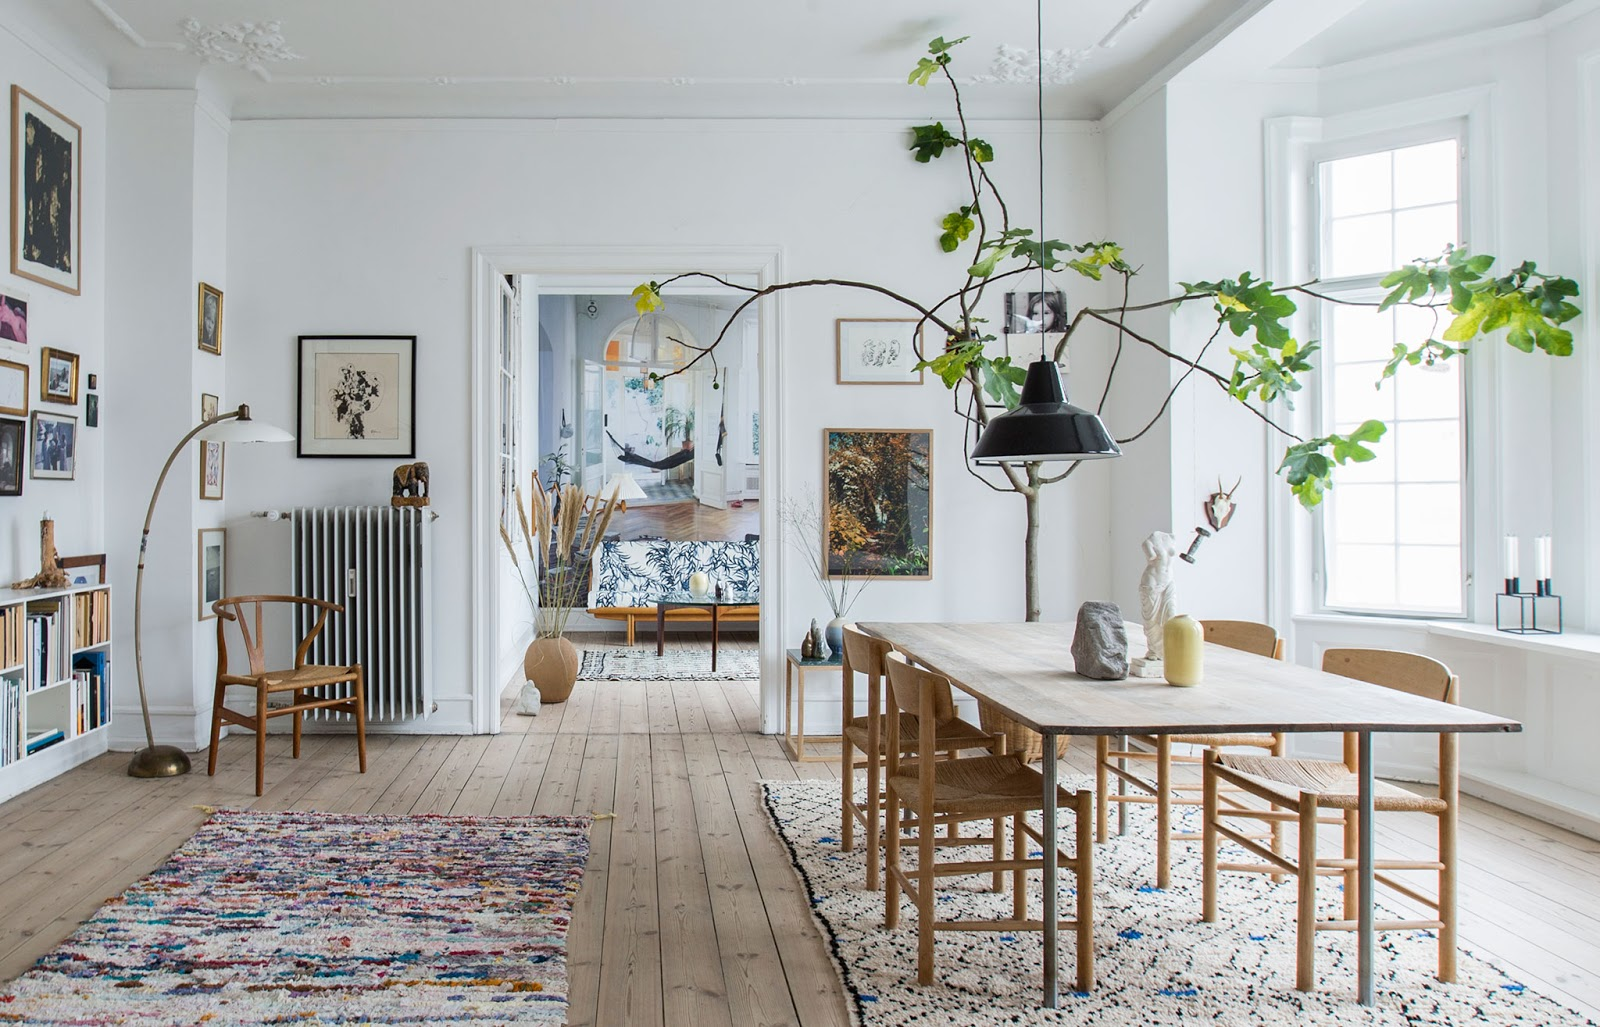 bohemian scandinavian apartment with moroccan rugs, wall art and design furniture, houseplants, hans wegner chair